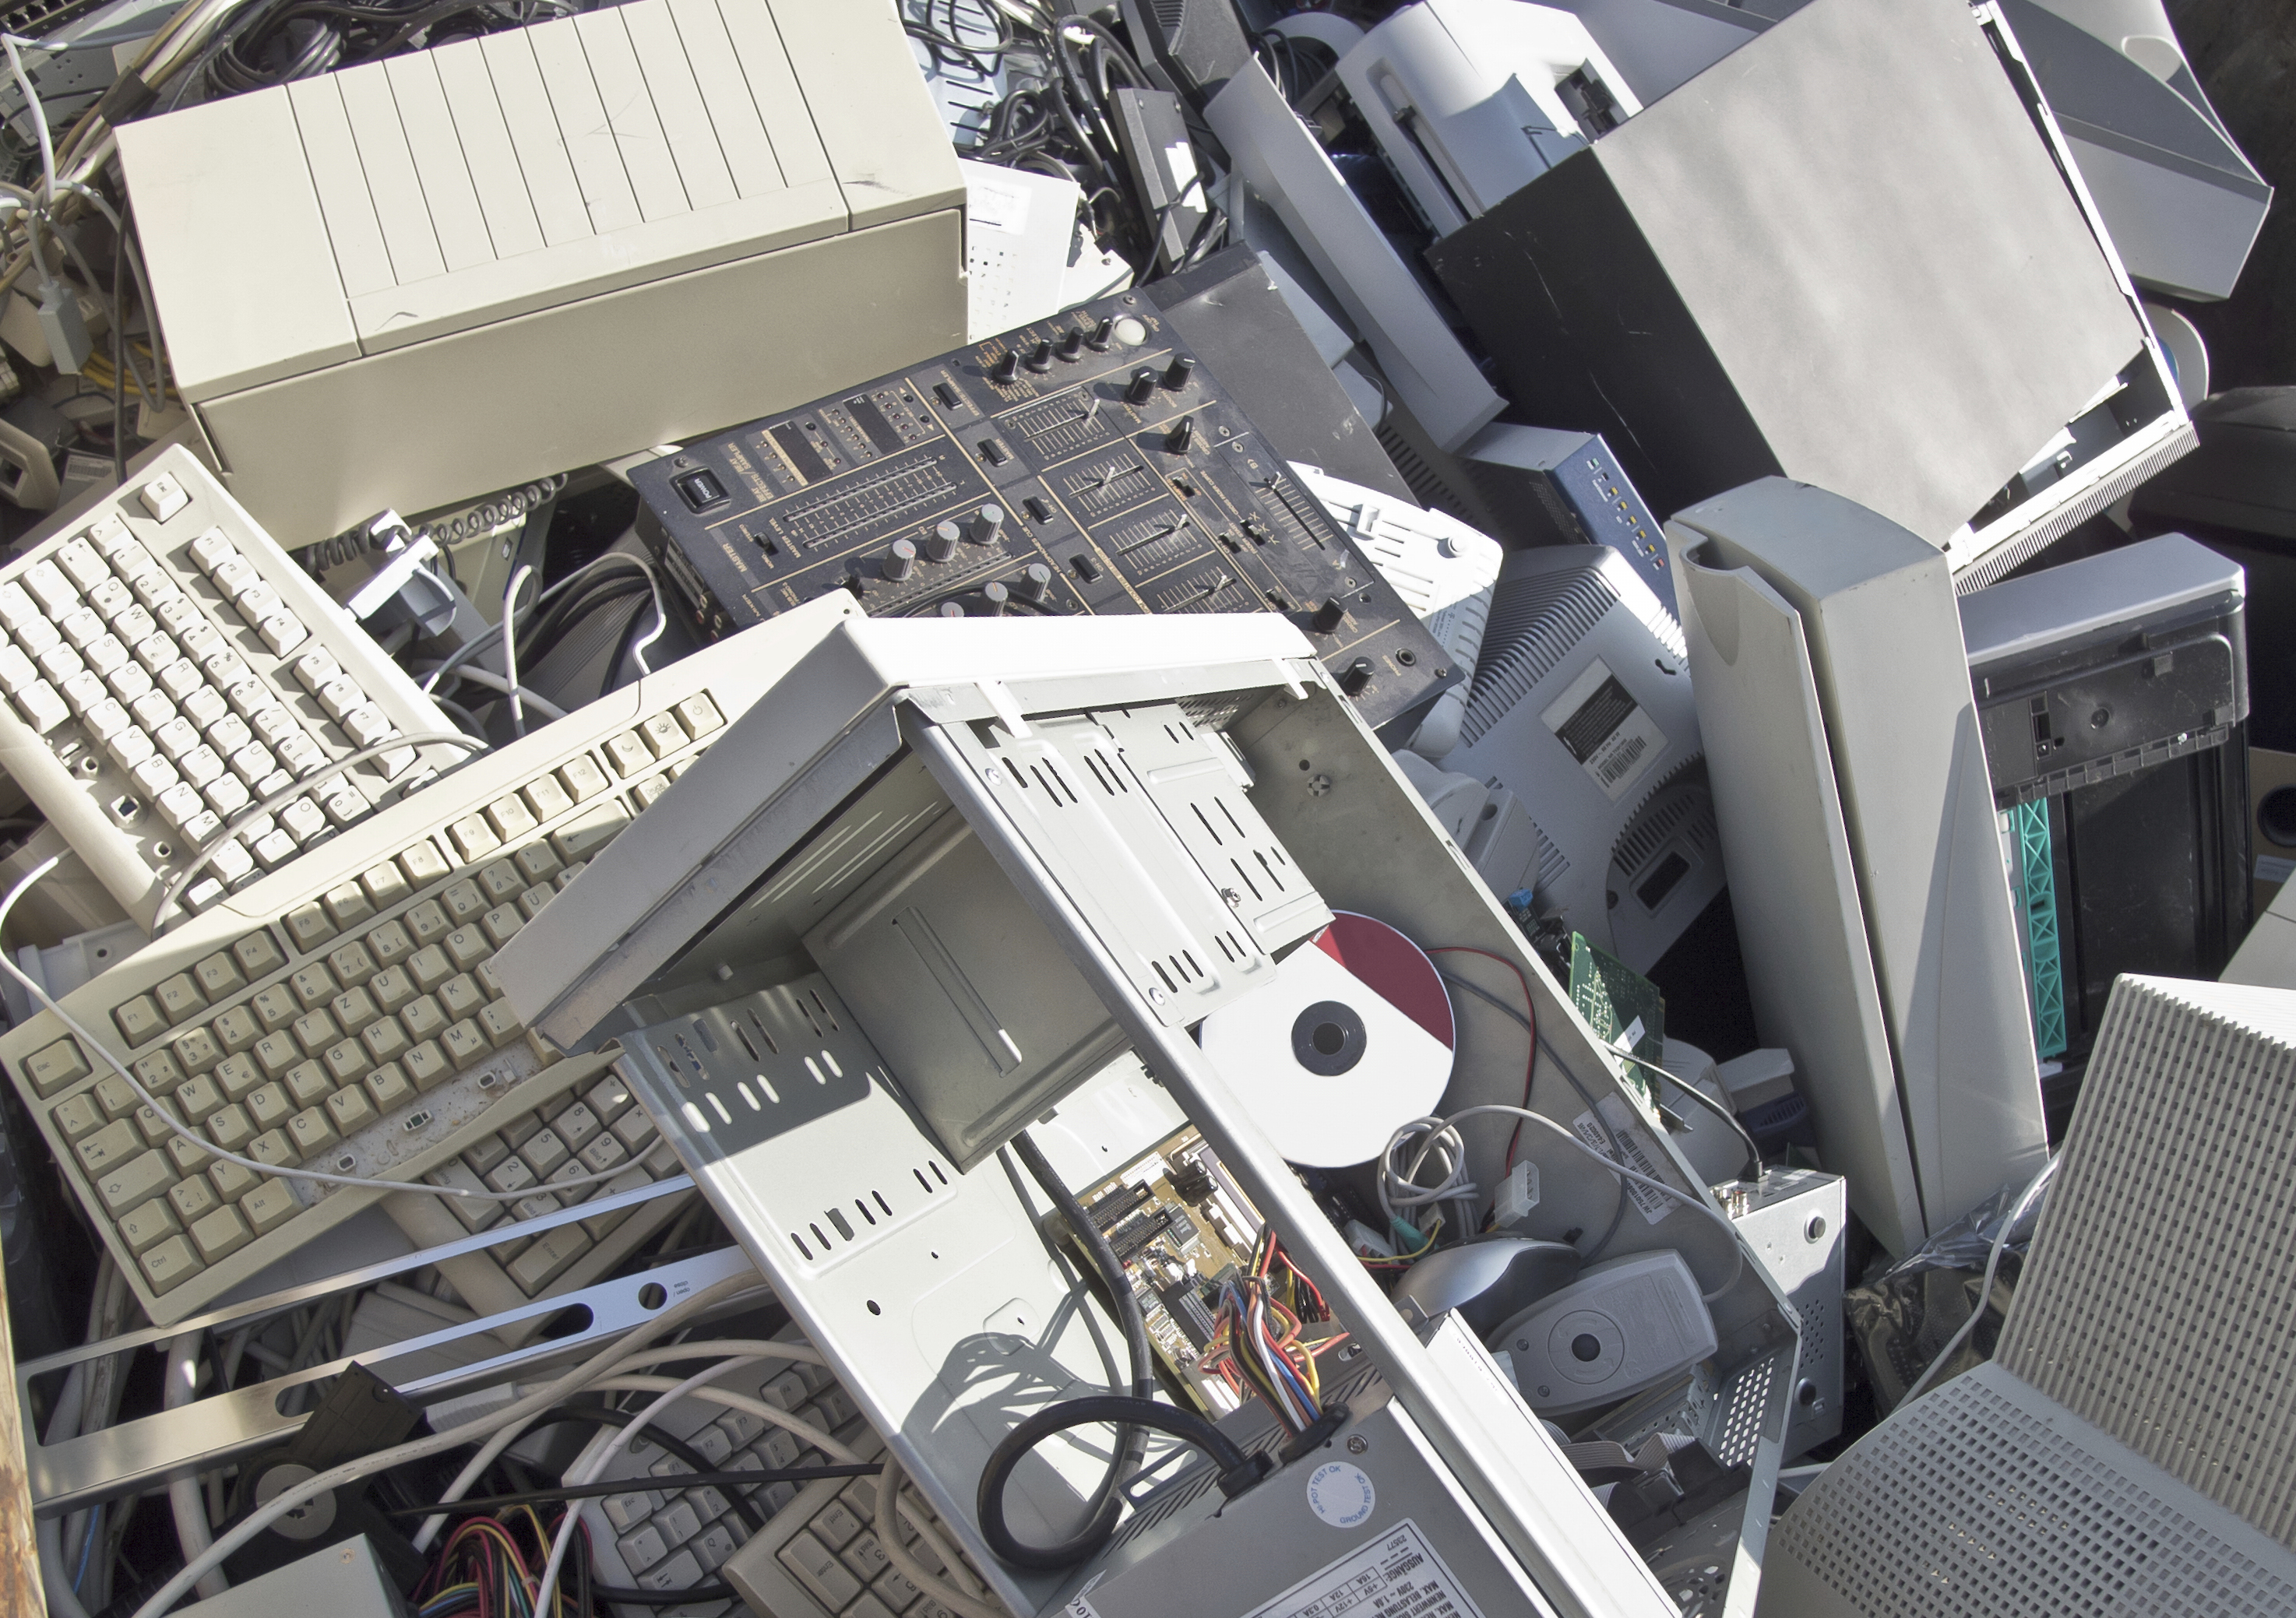 dispose-old-computer-complete-shredding-solutions